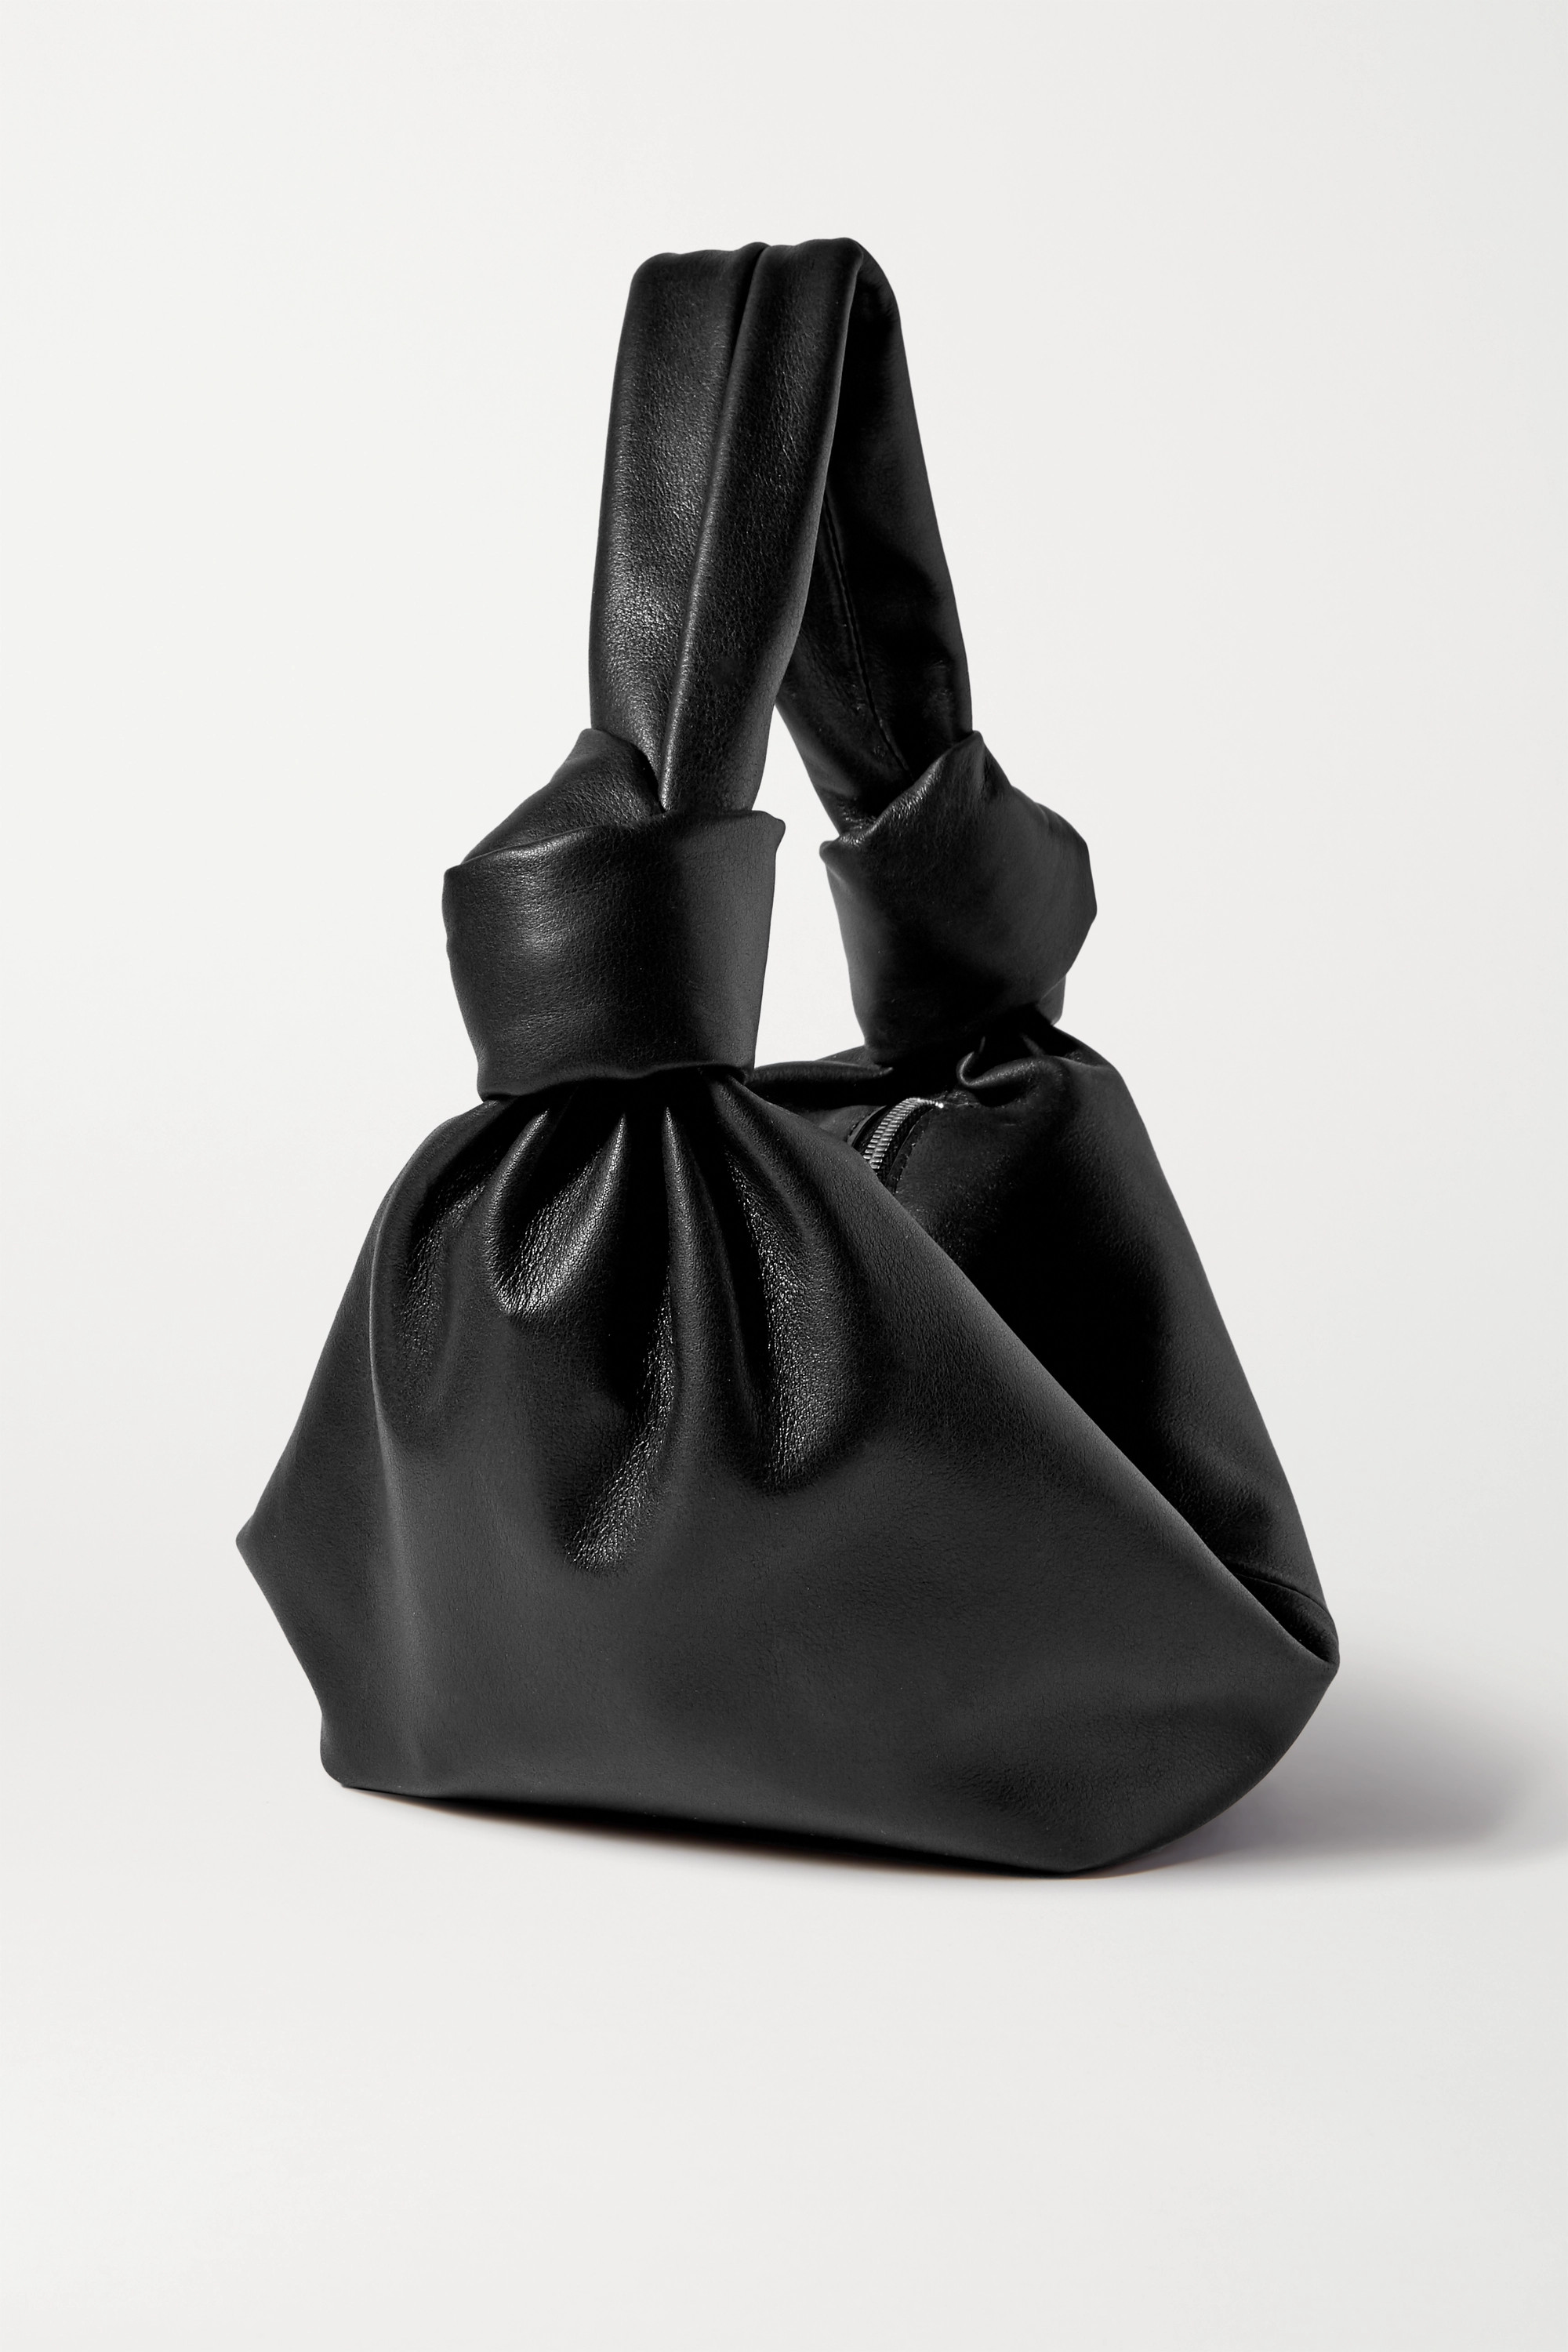 Bottega Veneta Jodie mini knotted leather tote